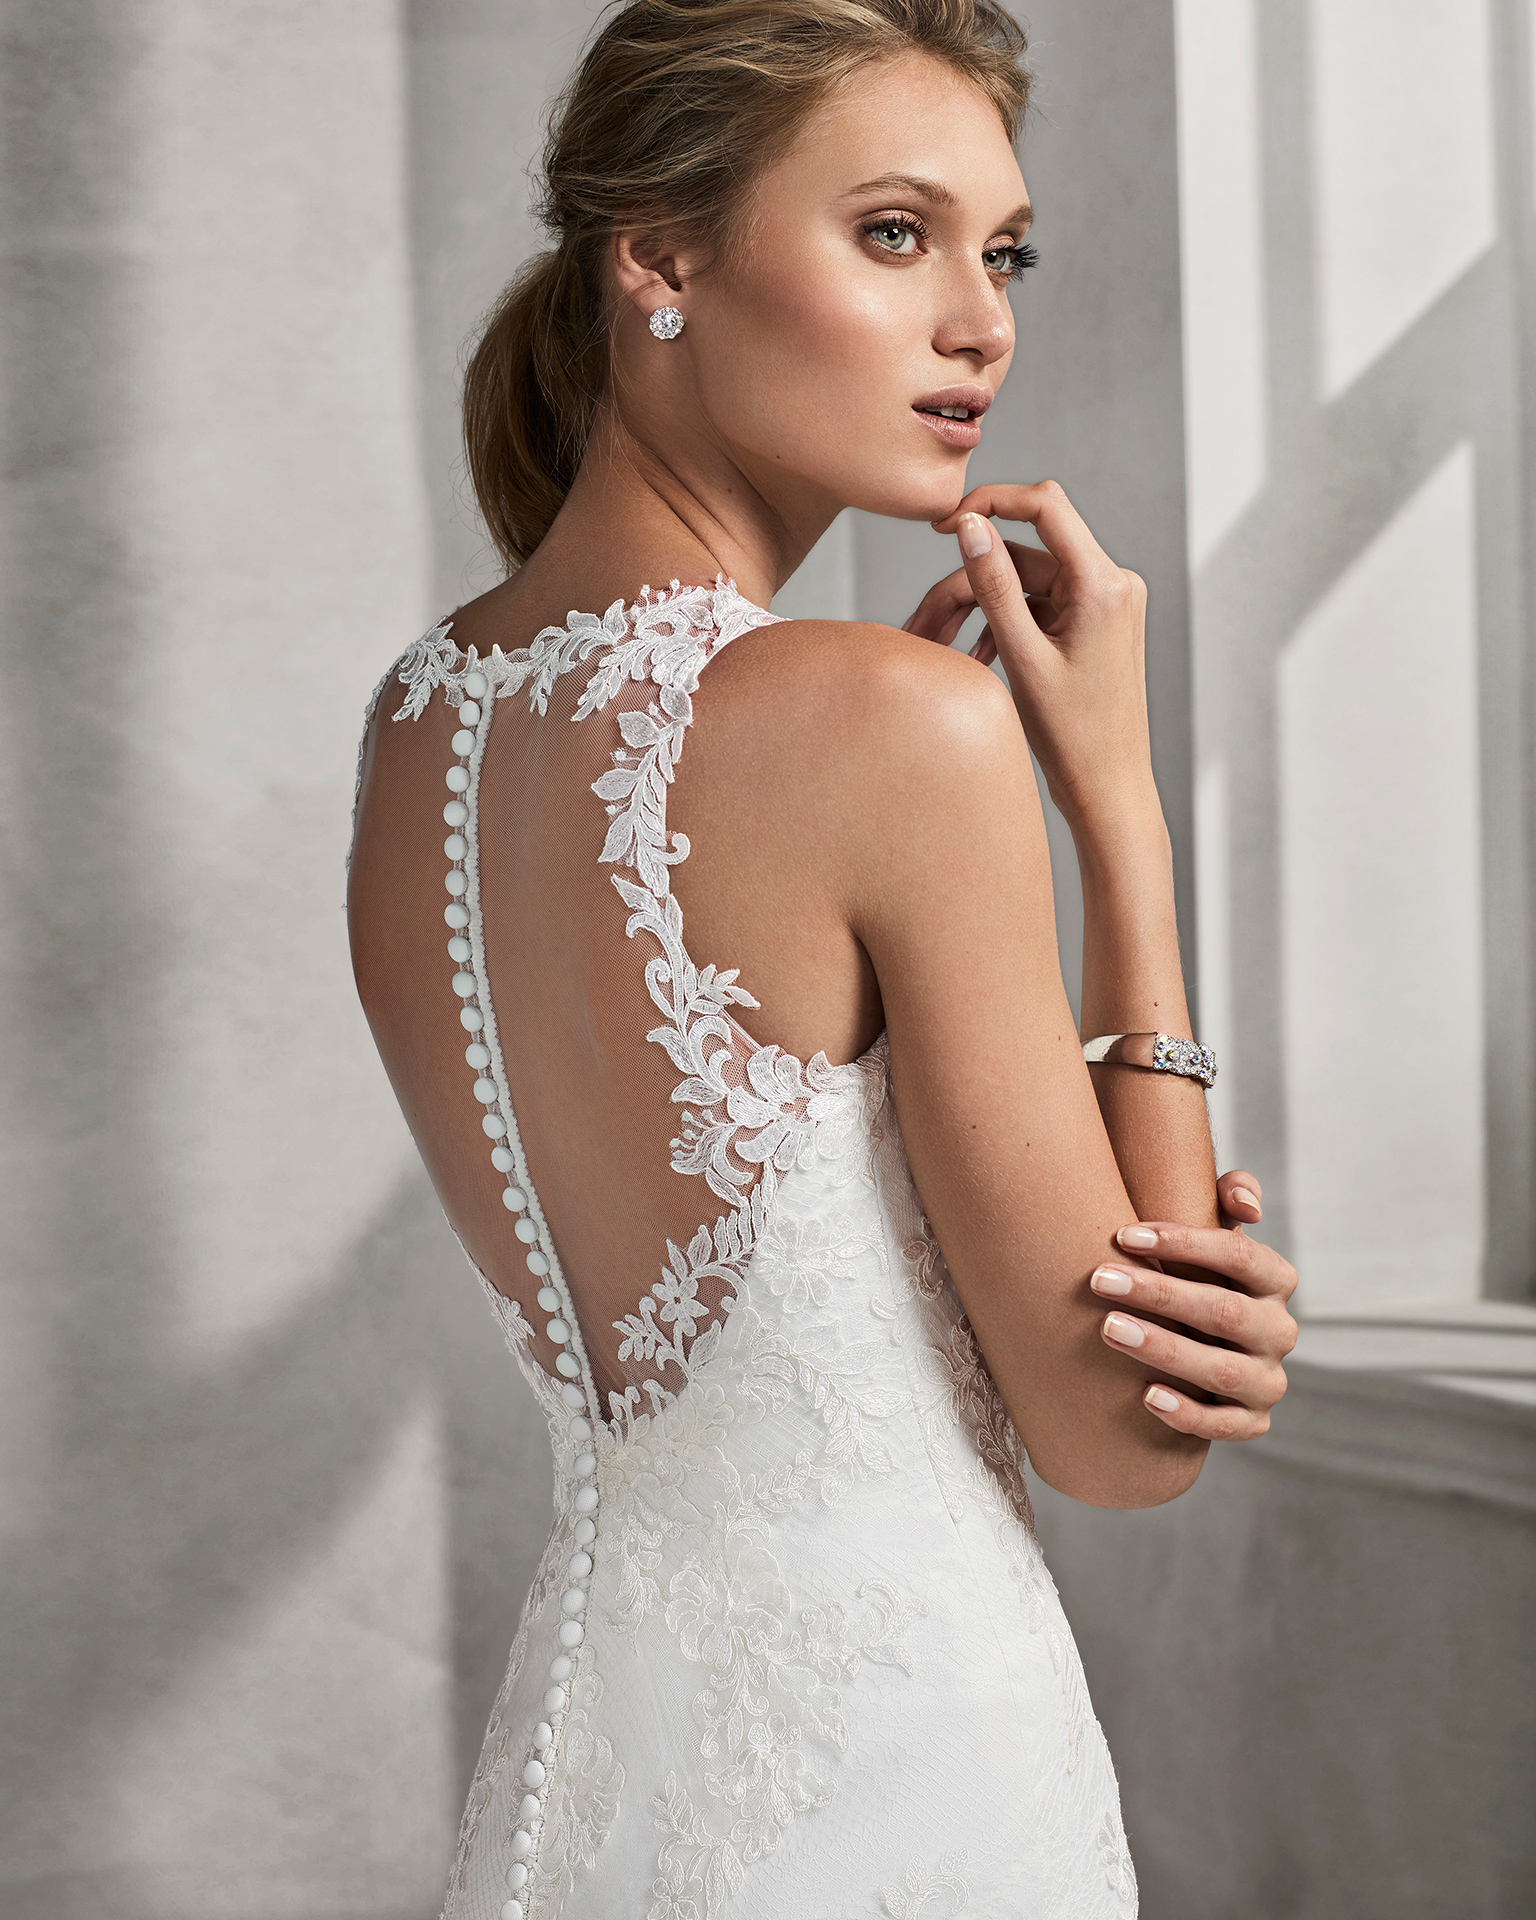 Mermaid-style lace wedding dress with sweetheart neckline and open back.